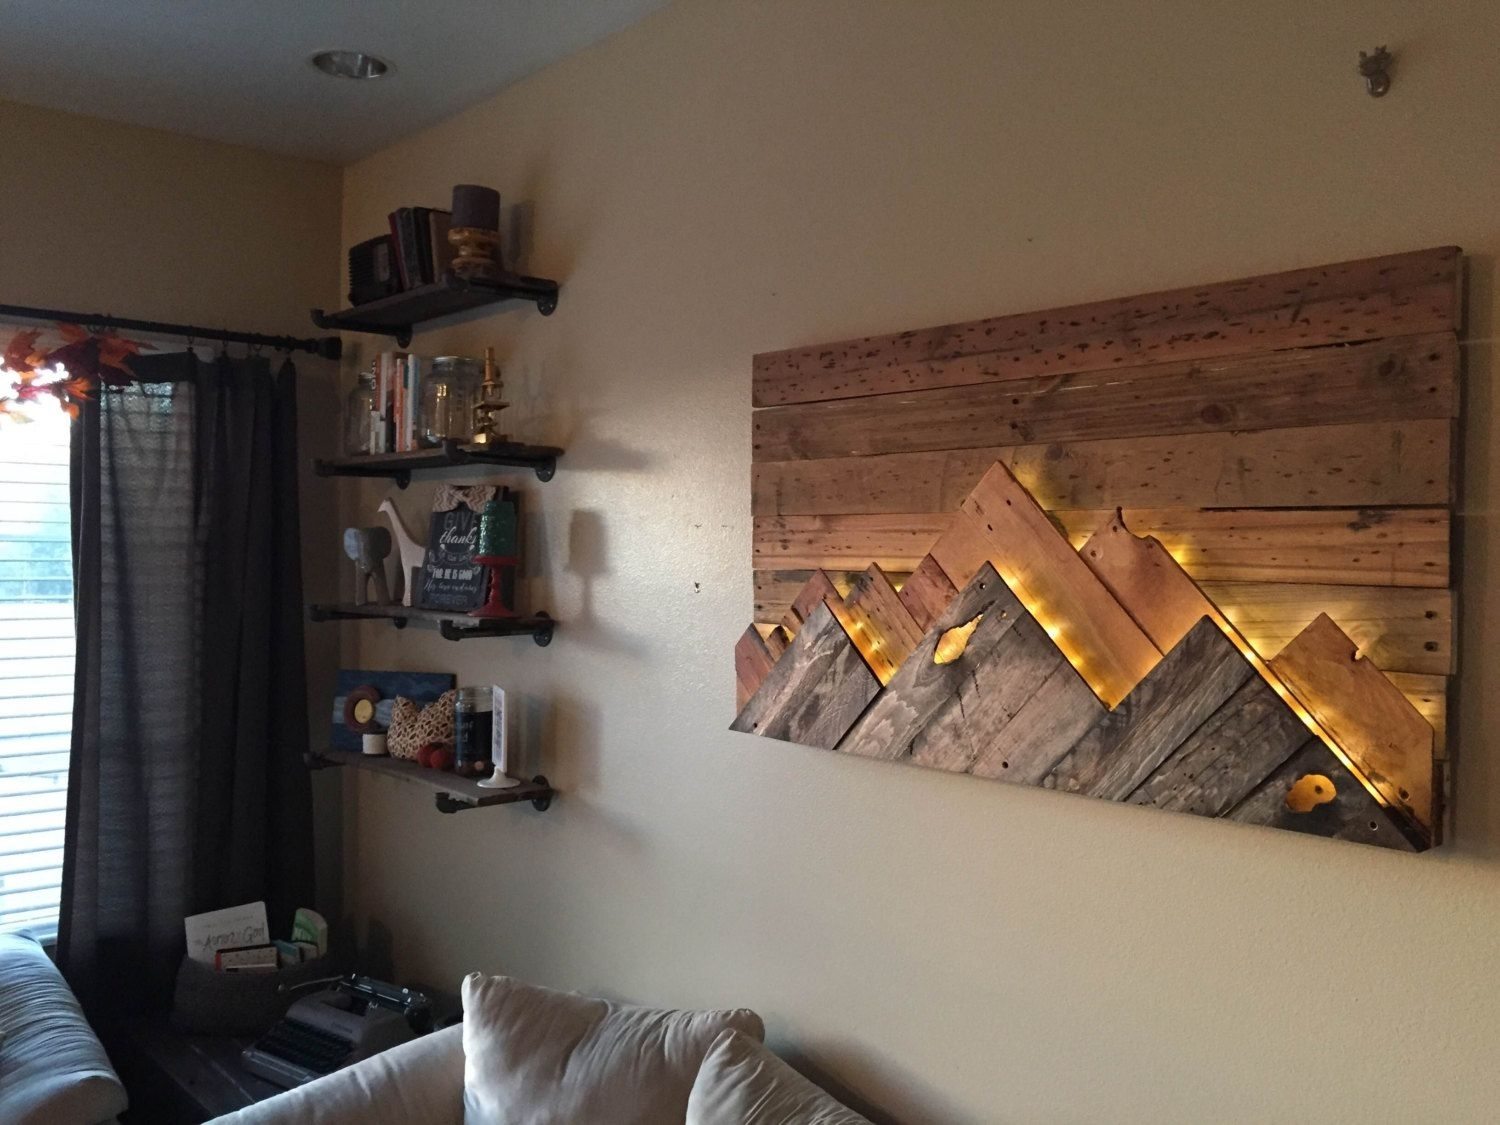 Wooden Mountain Range Wall Art | Mountain Range, Ranges And Walls In 2017 Wall Accents With Pallets (View 14 of 15)